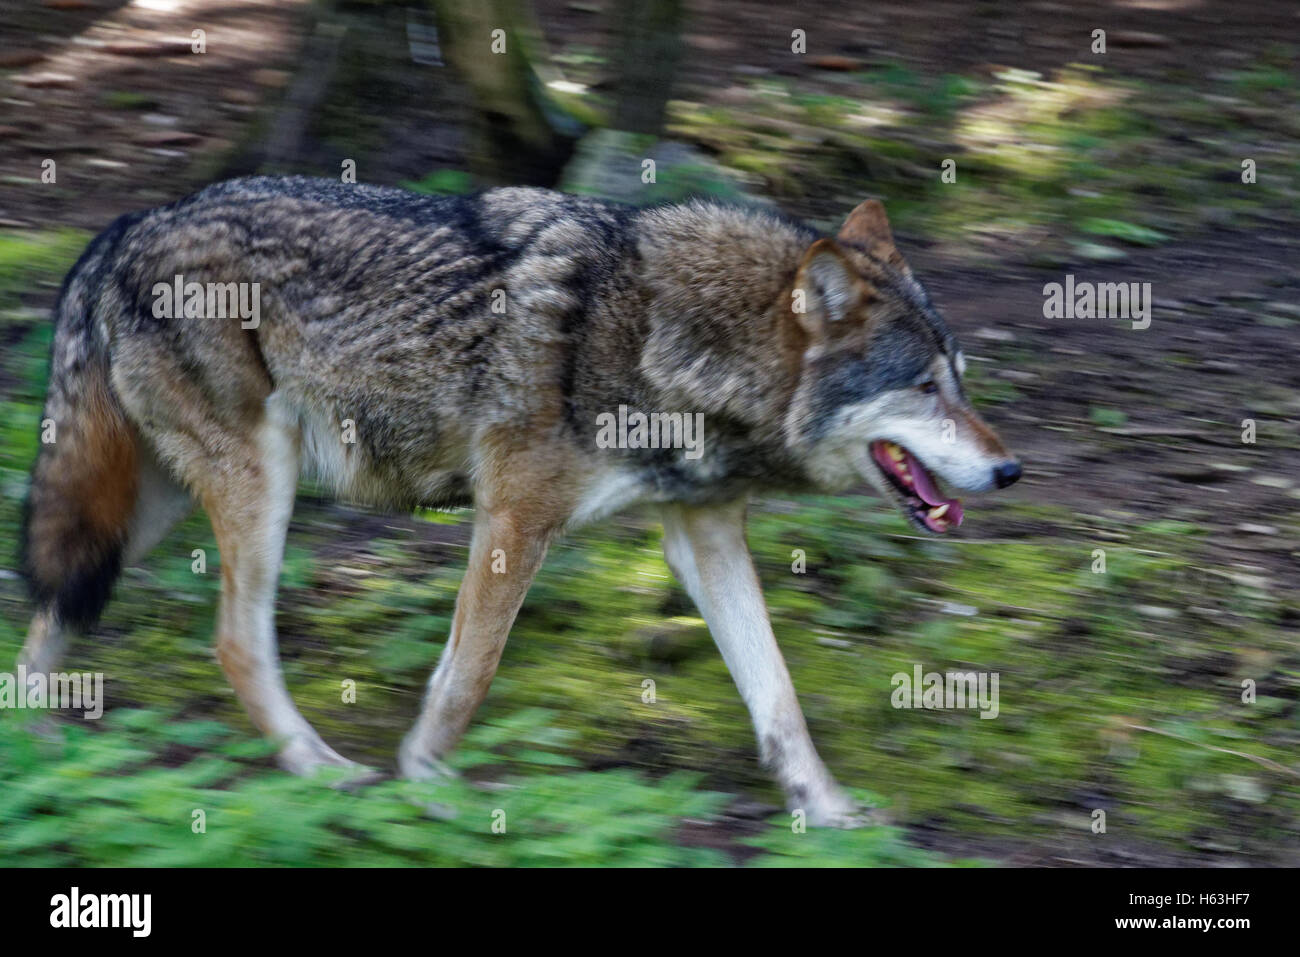 Gray wolf or grey wolf (Canis lupus), also known as the timber wolf or western wolf. Stock Photo